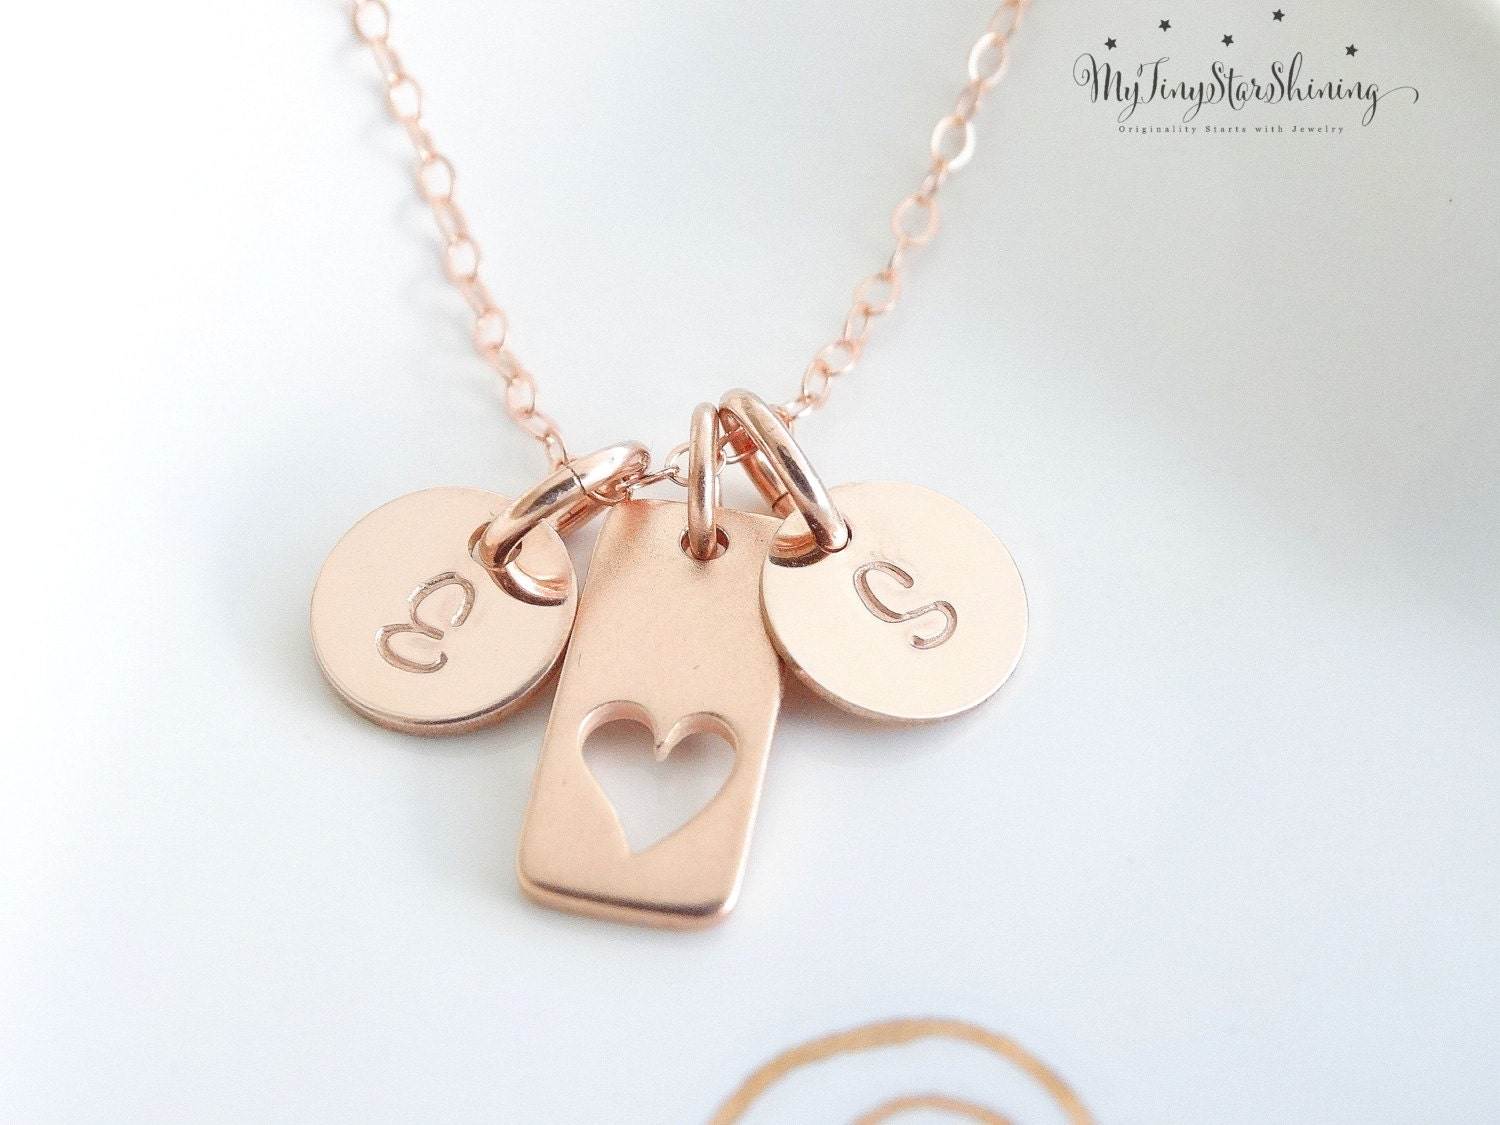 Heart necklace mother daughter jewelry mother daughter necklace set heart necklace mother daughter jewelry mother daughter necklace set rose gold heart pendants mom daughter gift set mom christmas gift aloadofball Images